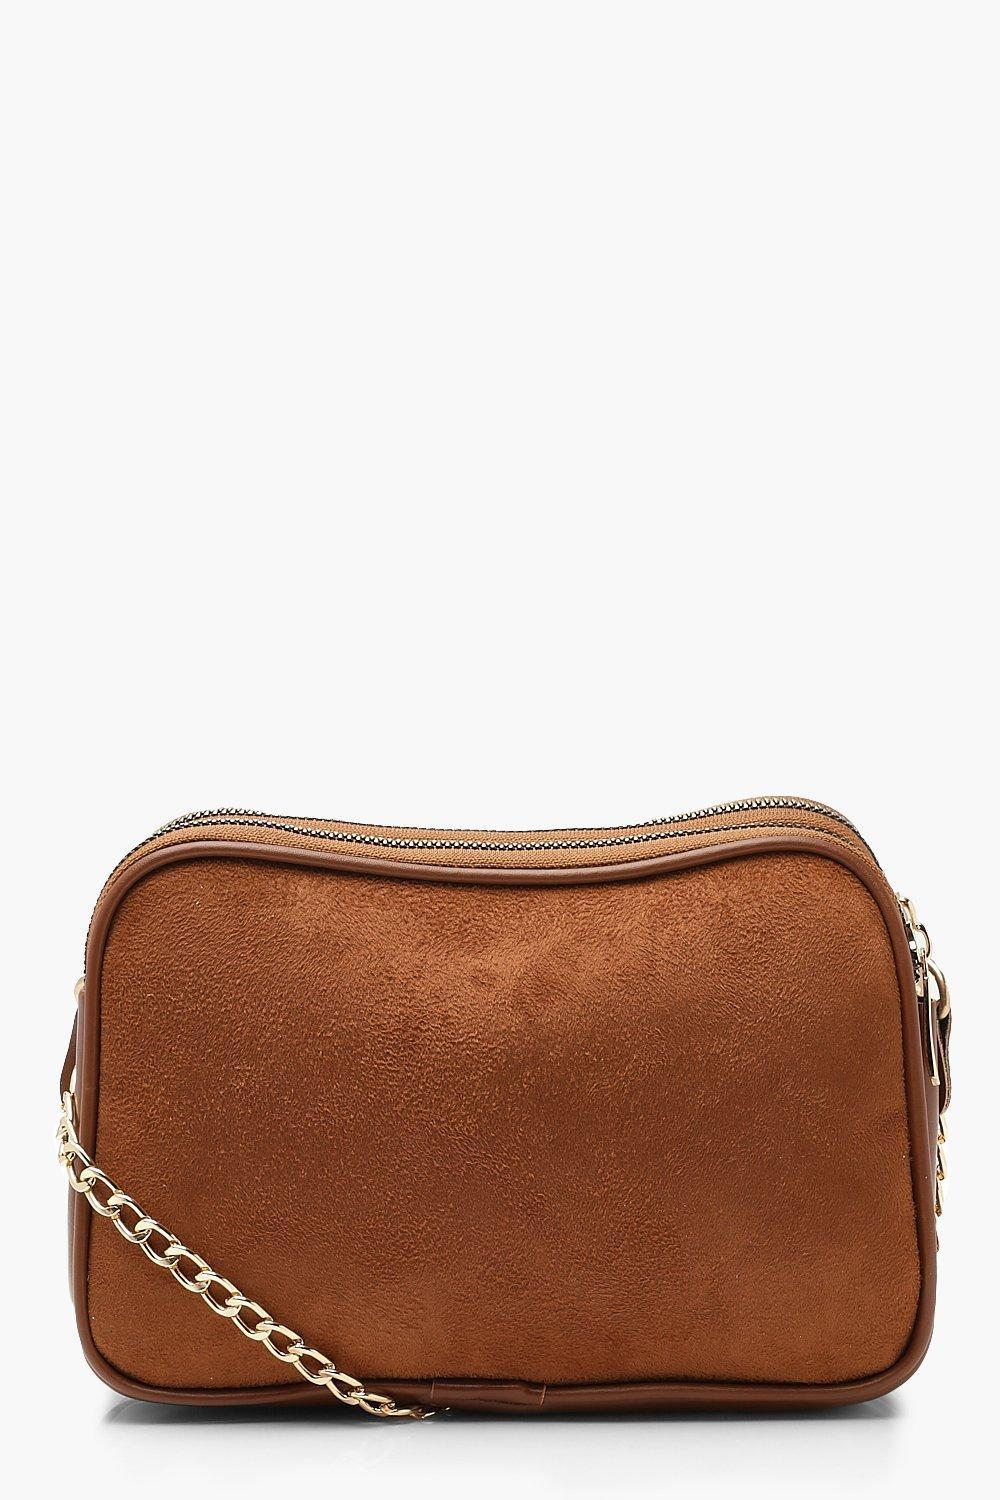 bfaa4710affa Lyst - Boohoo Suedette Dual Compartment Cross Body in Brown